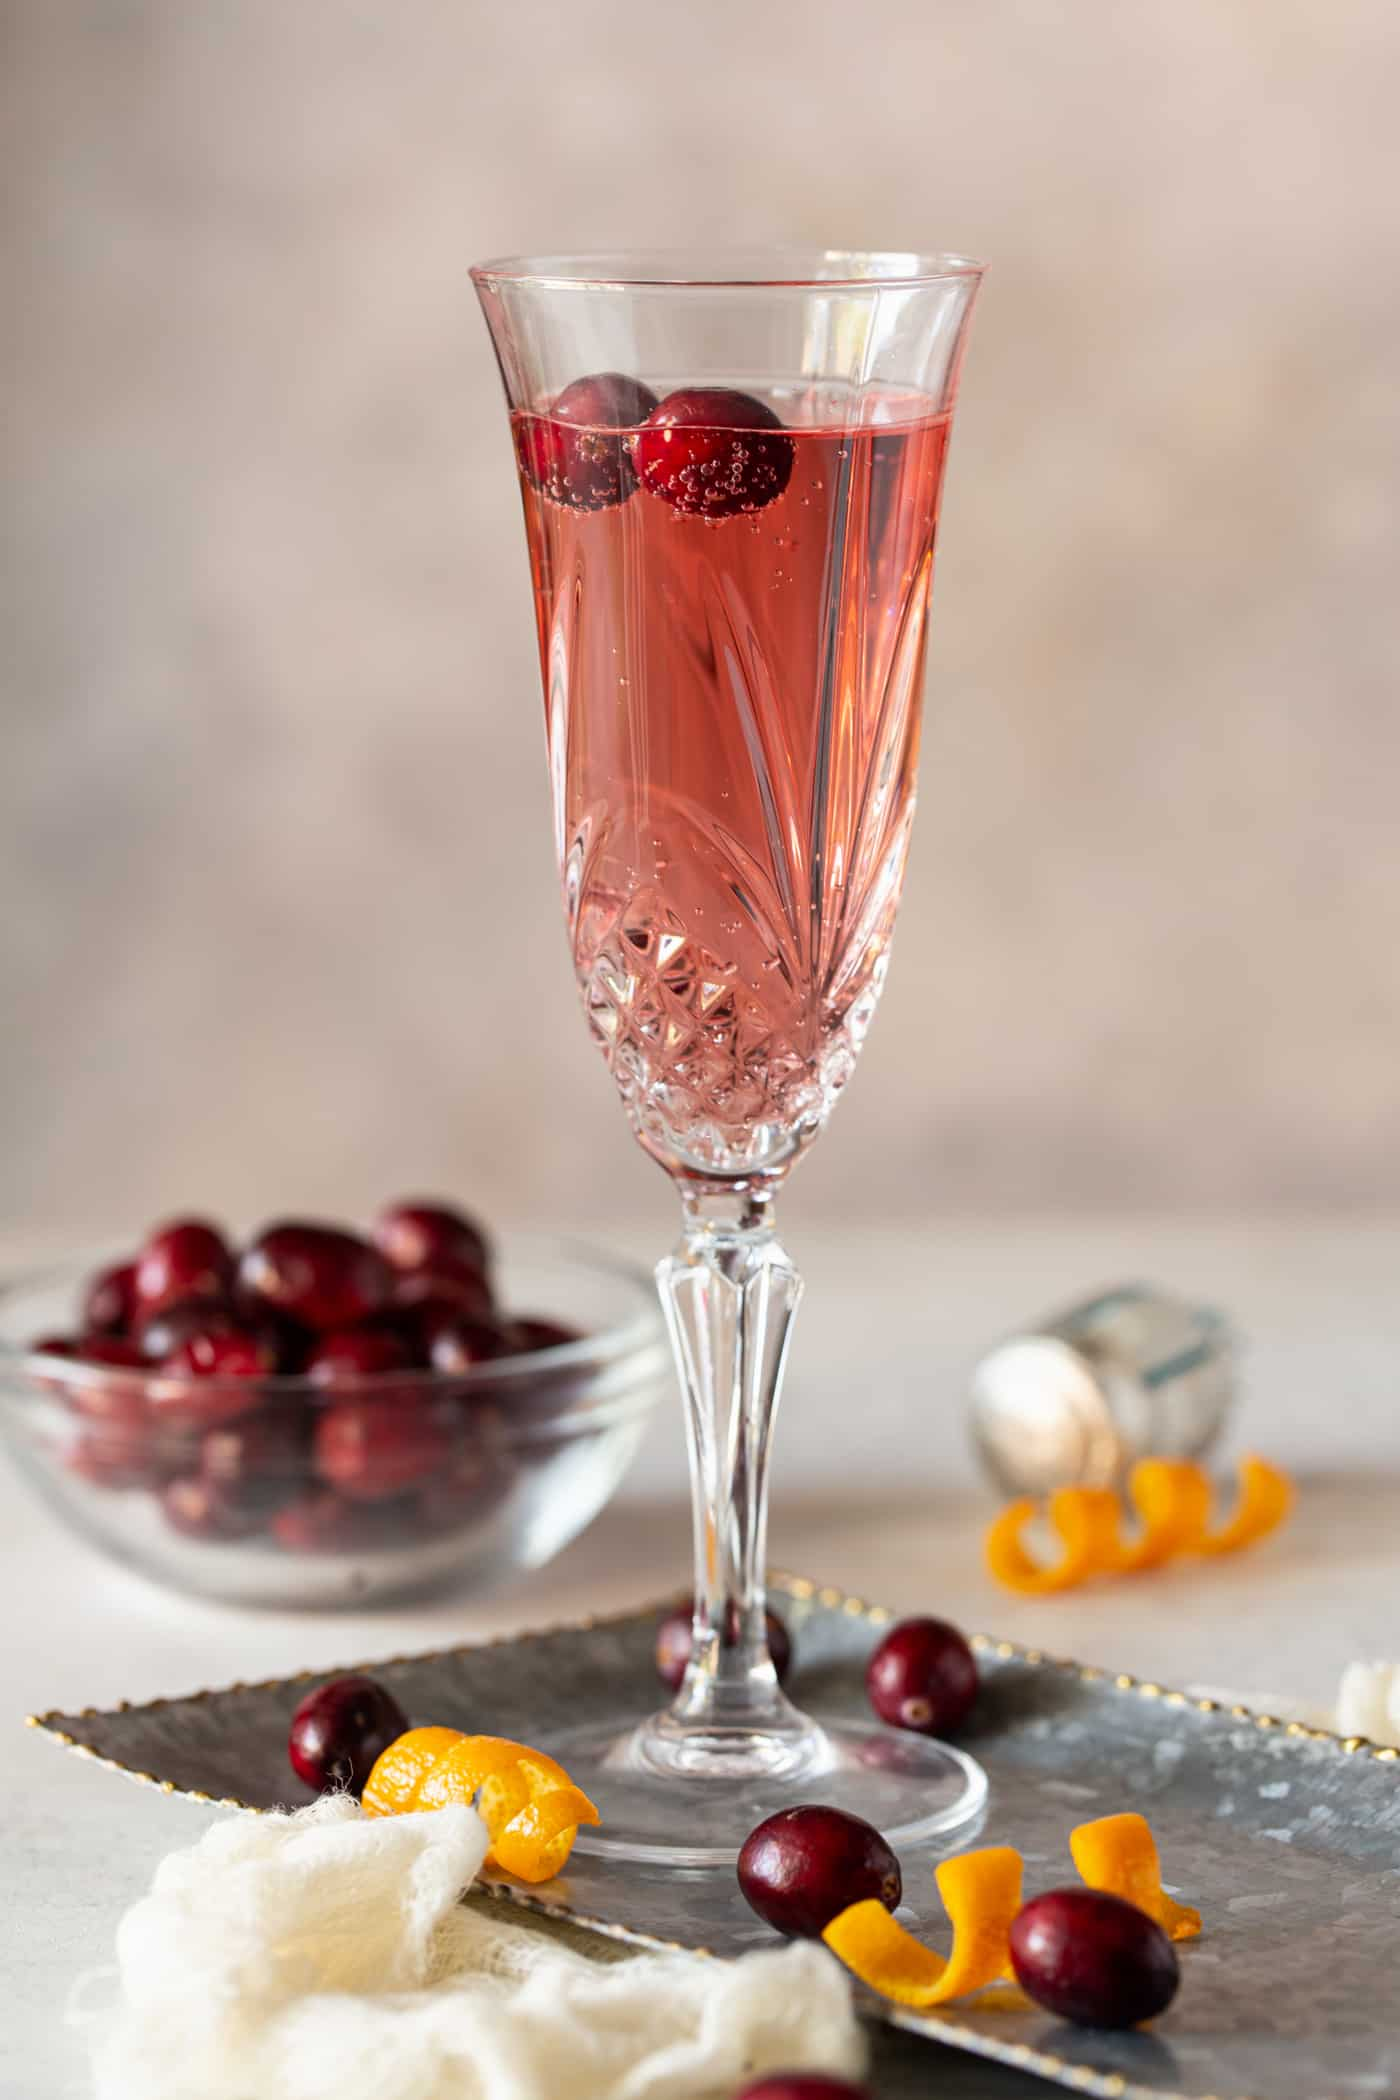 Single glass of Cranberry Orange Prosecco Cocktail in a chapgane flute with fresh cranberries and oranges for garnish.